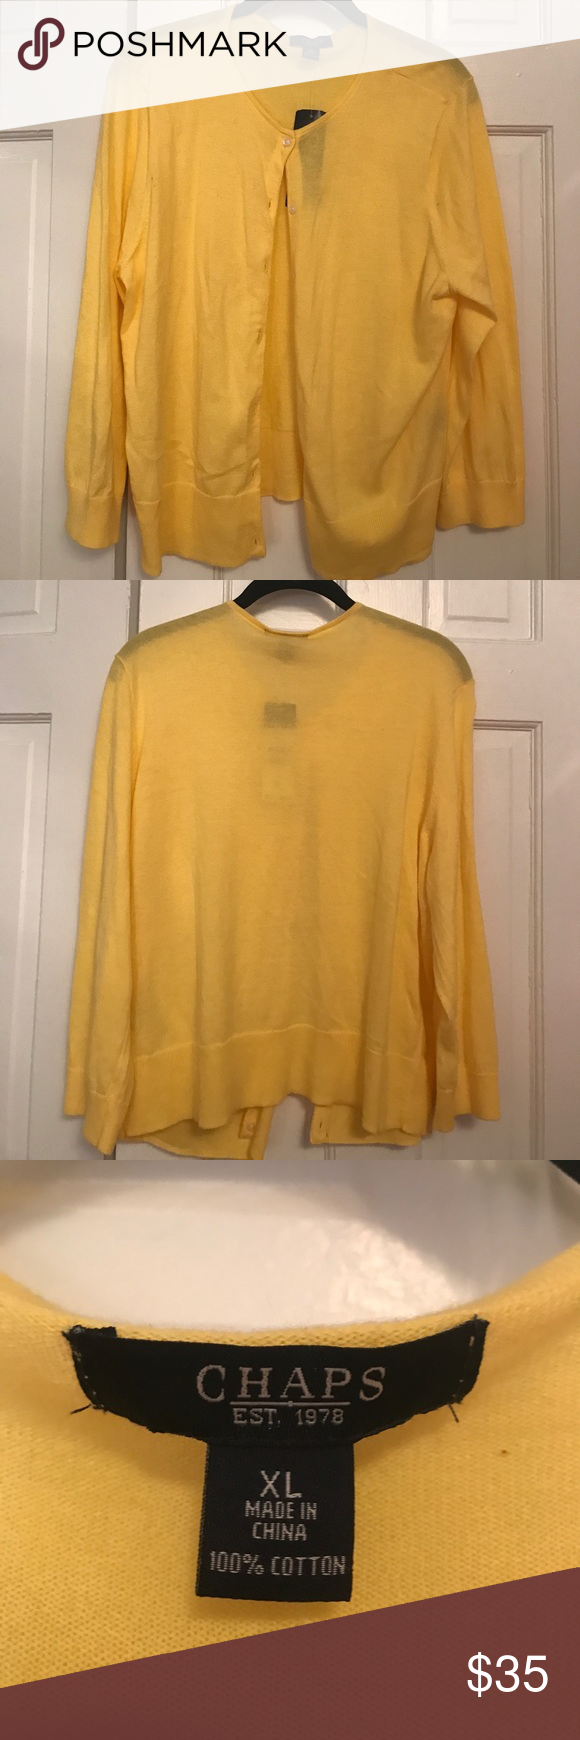 Springy Yellow Cardigan NWT | Sweater cardigan, Cardigans and As